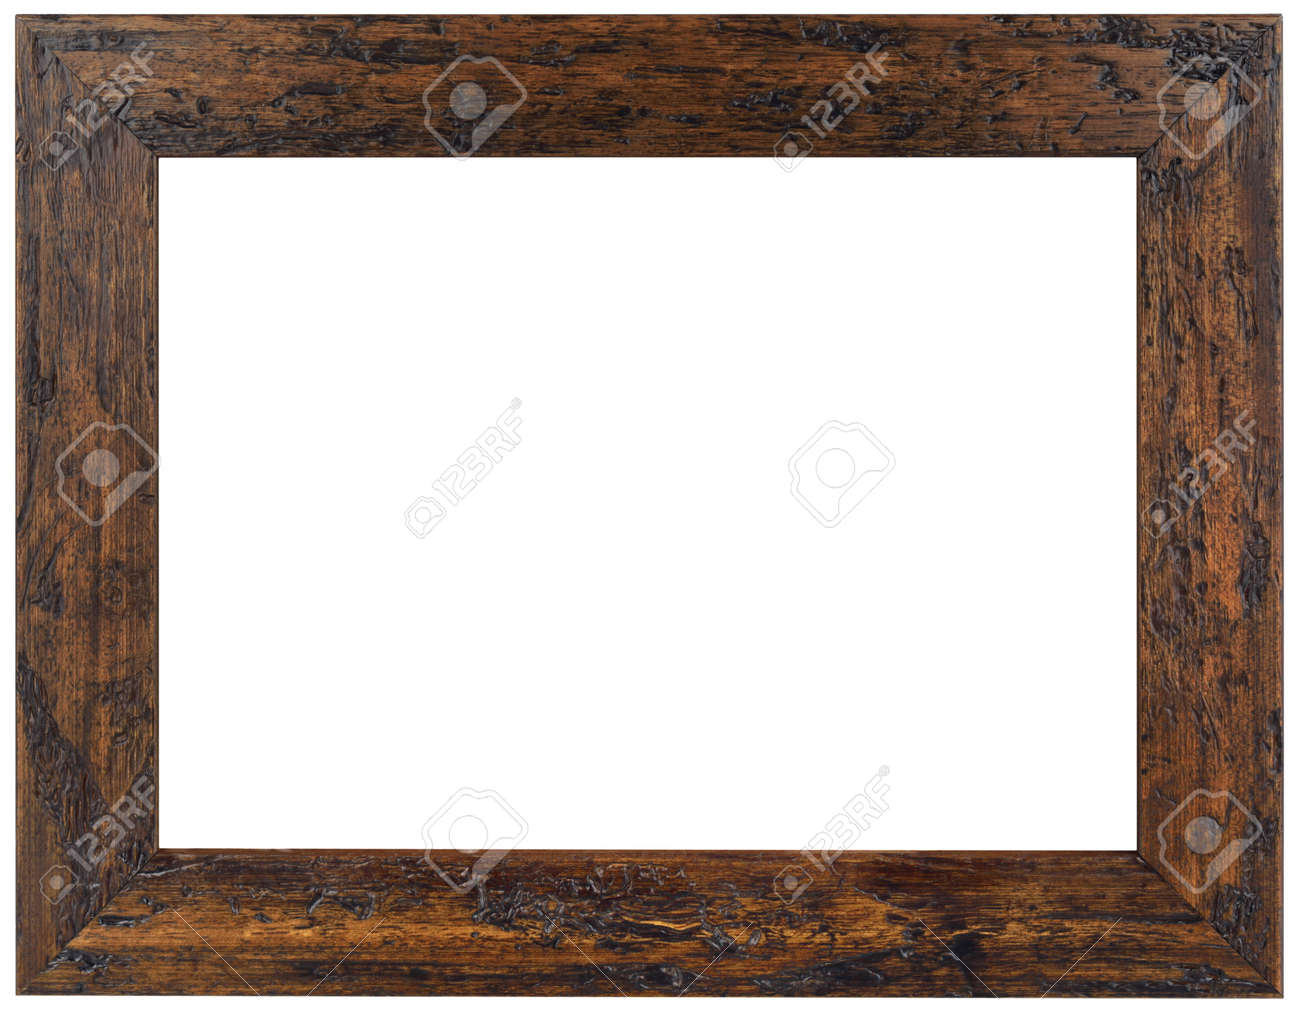 Wooden Picture Frame Isolated with Clipping Path Standard-Bild - 18711130